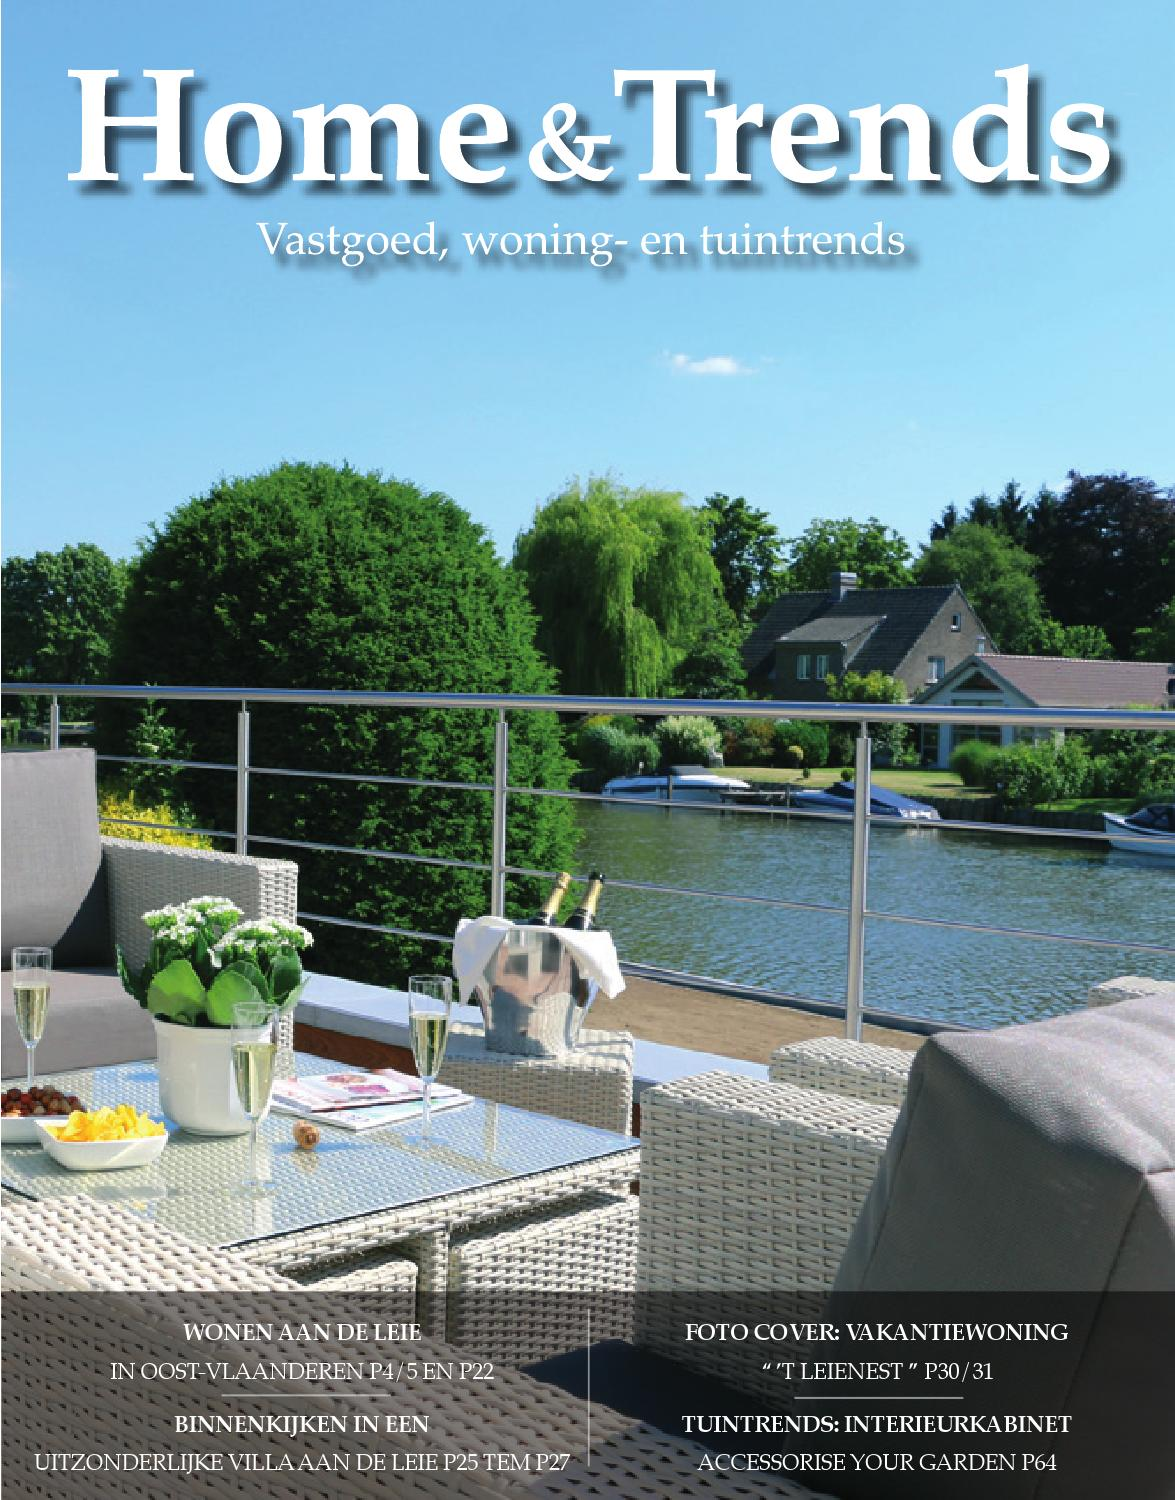 Home & trends editie 18 by Home & Trends - issuu